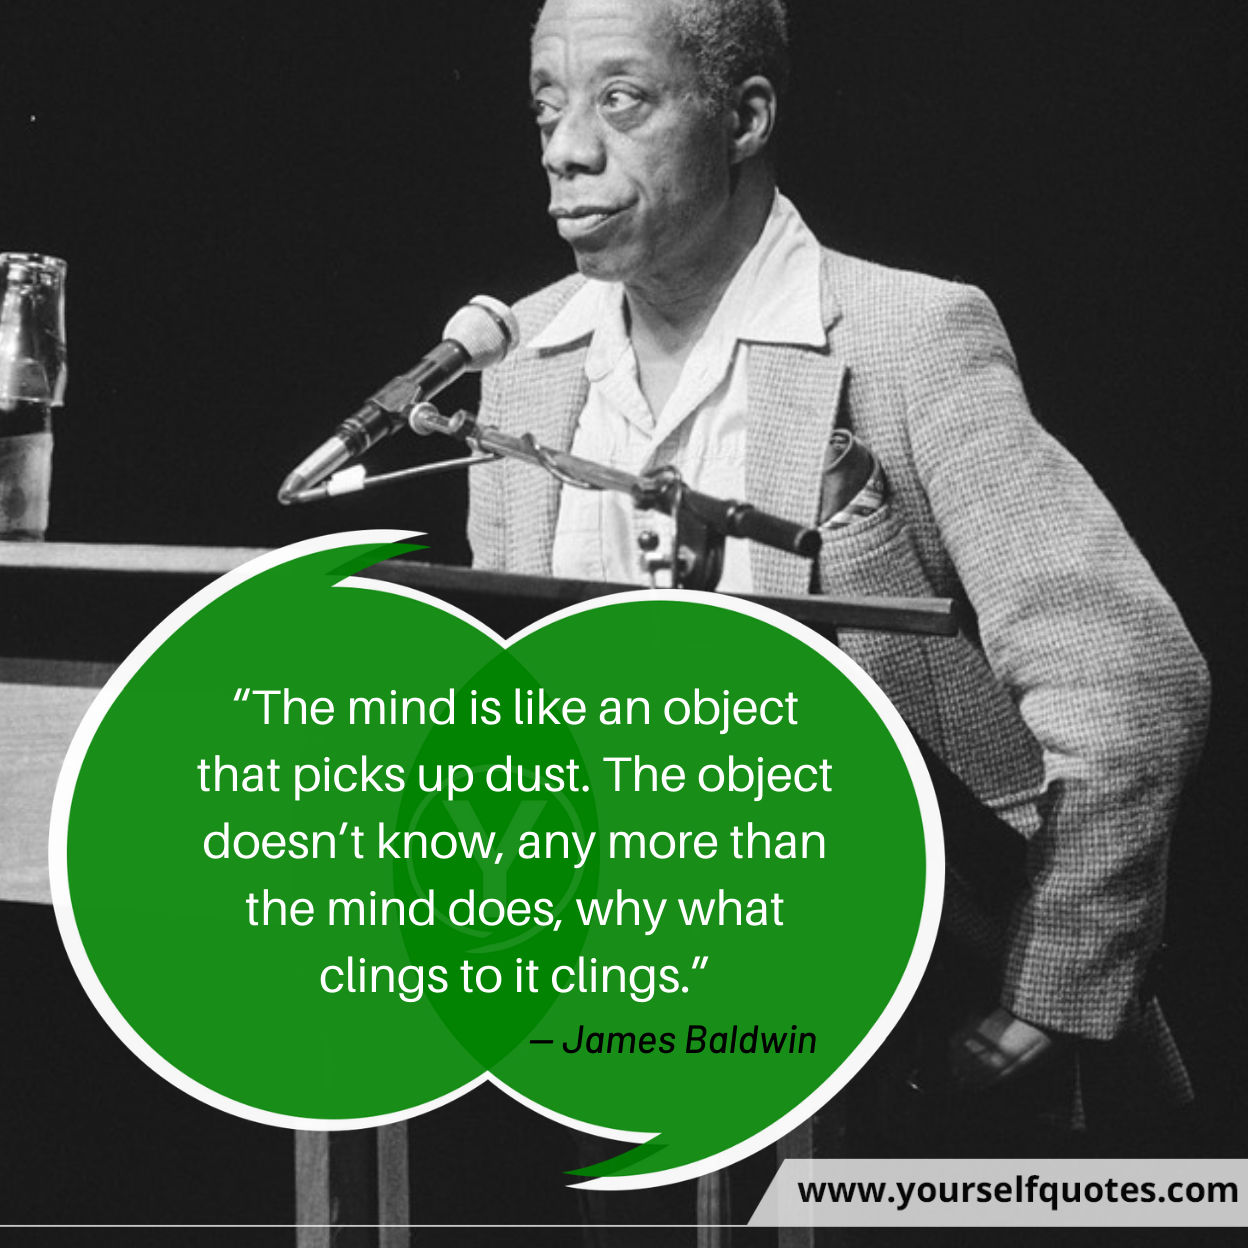 Best James Baldwin Quotes images